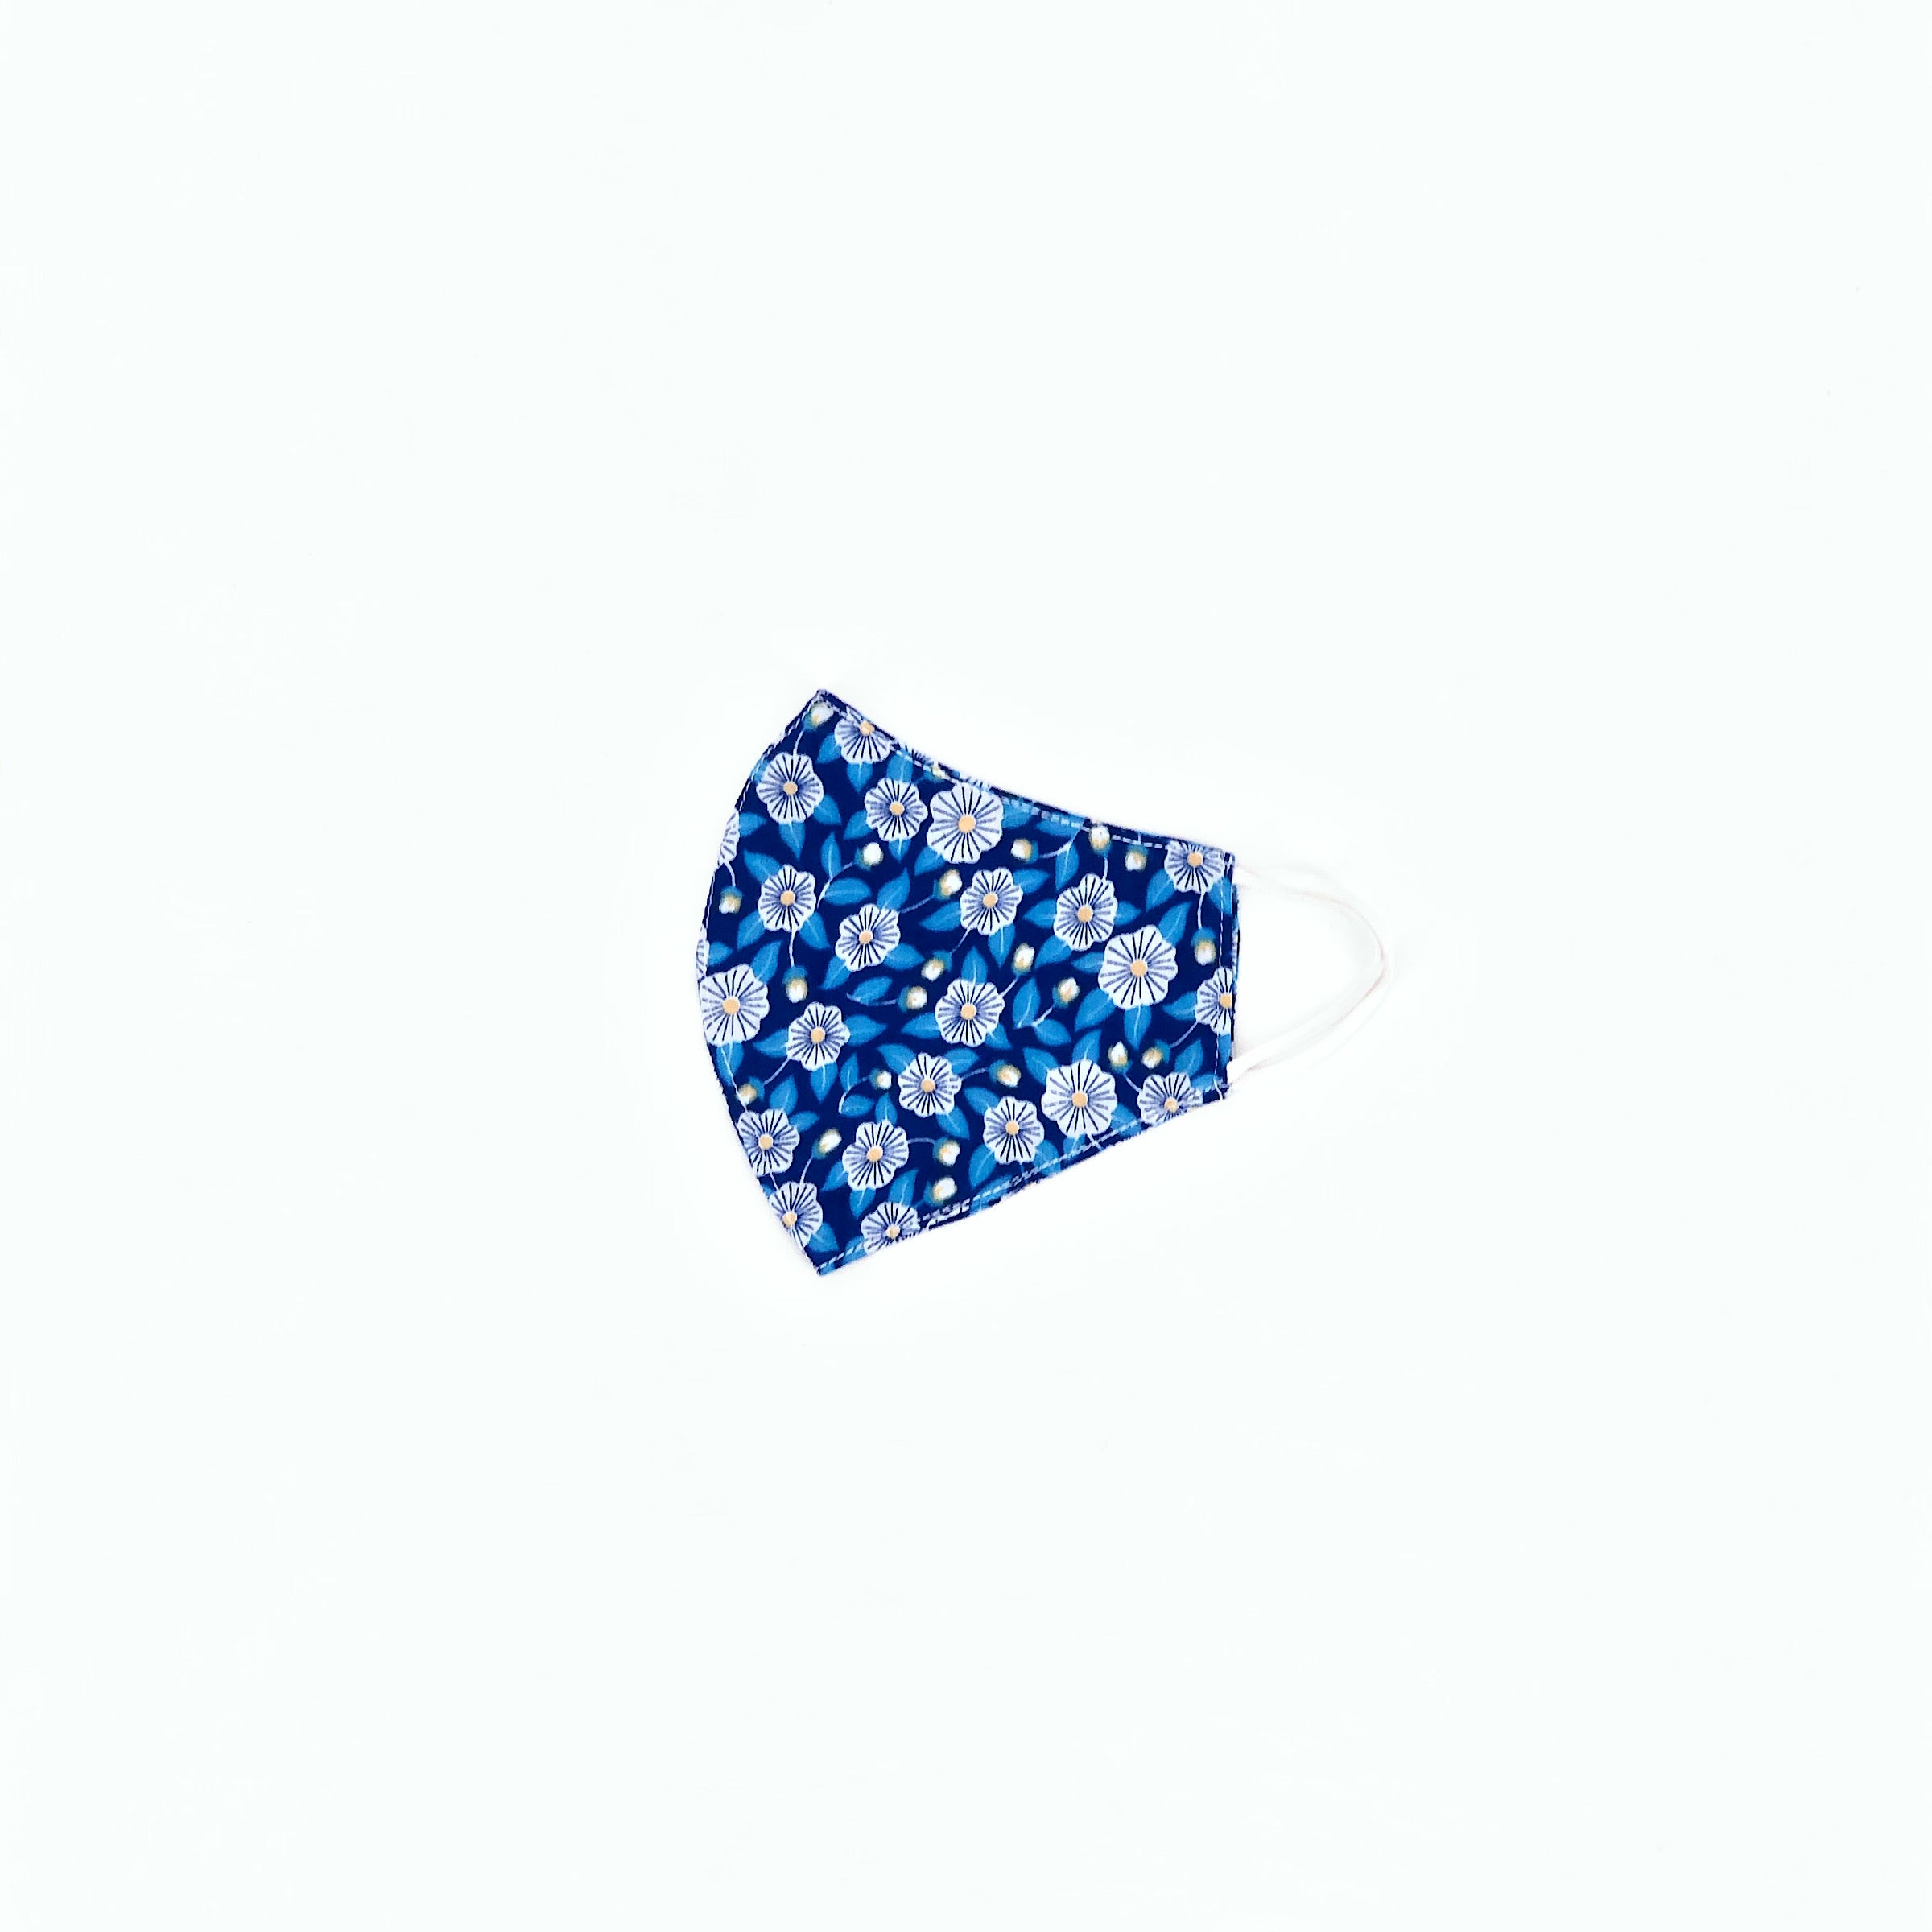 The Face Mask in Blue Poppy Print